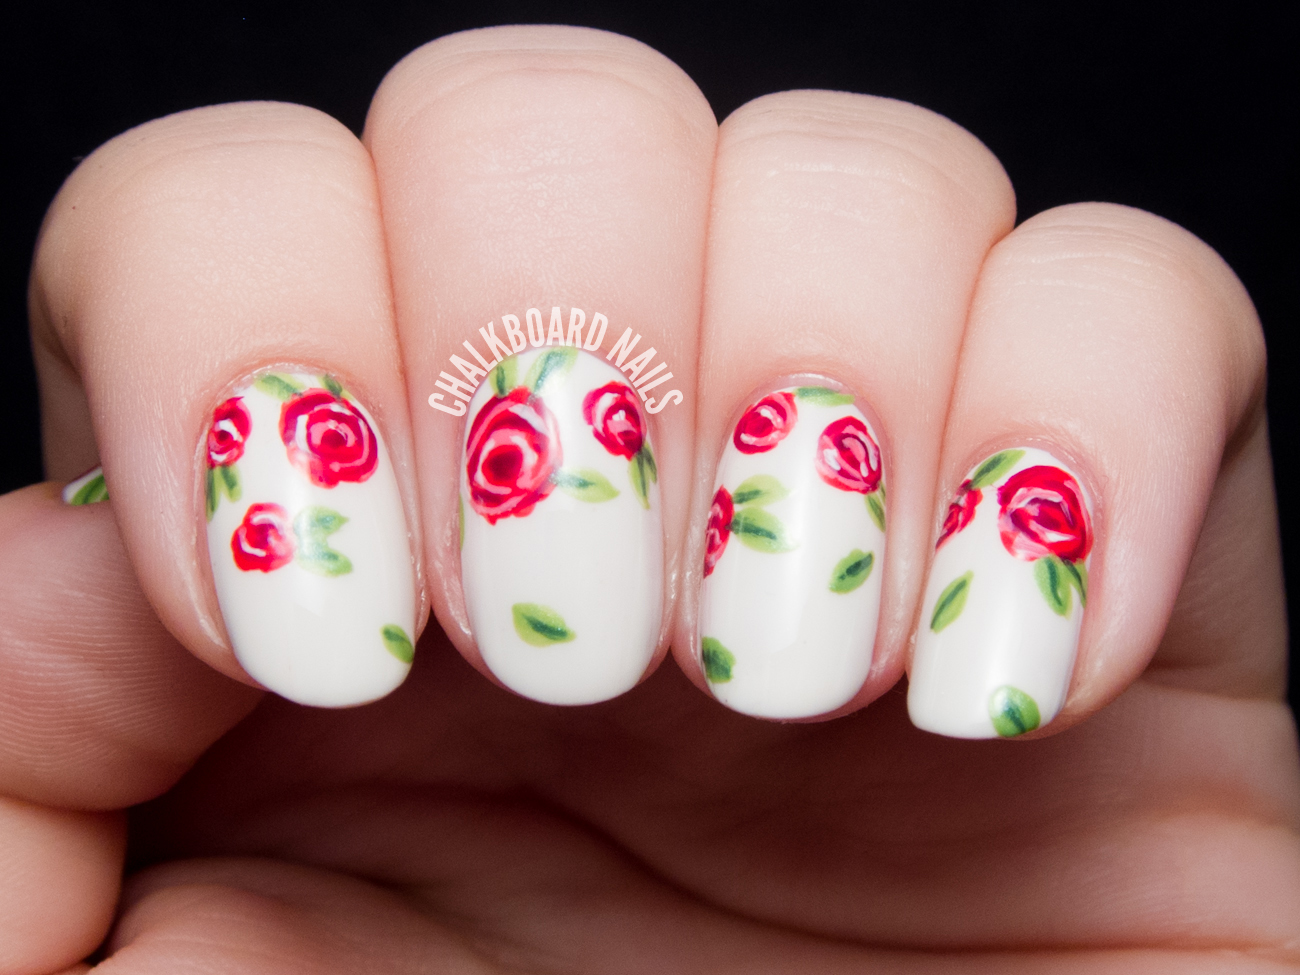 Sweet Red Rose Nail Art By Chalkboardnails